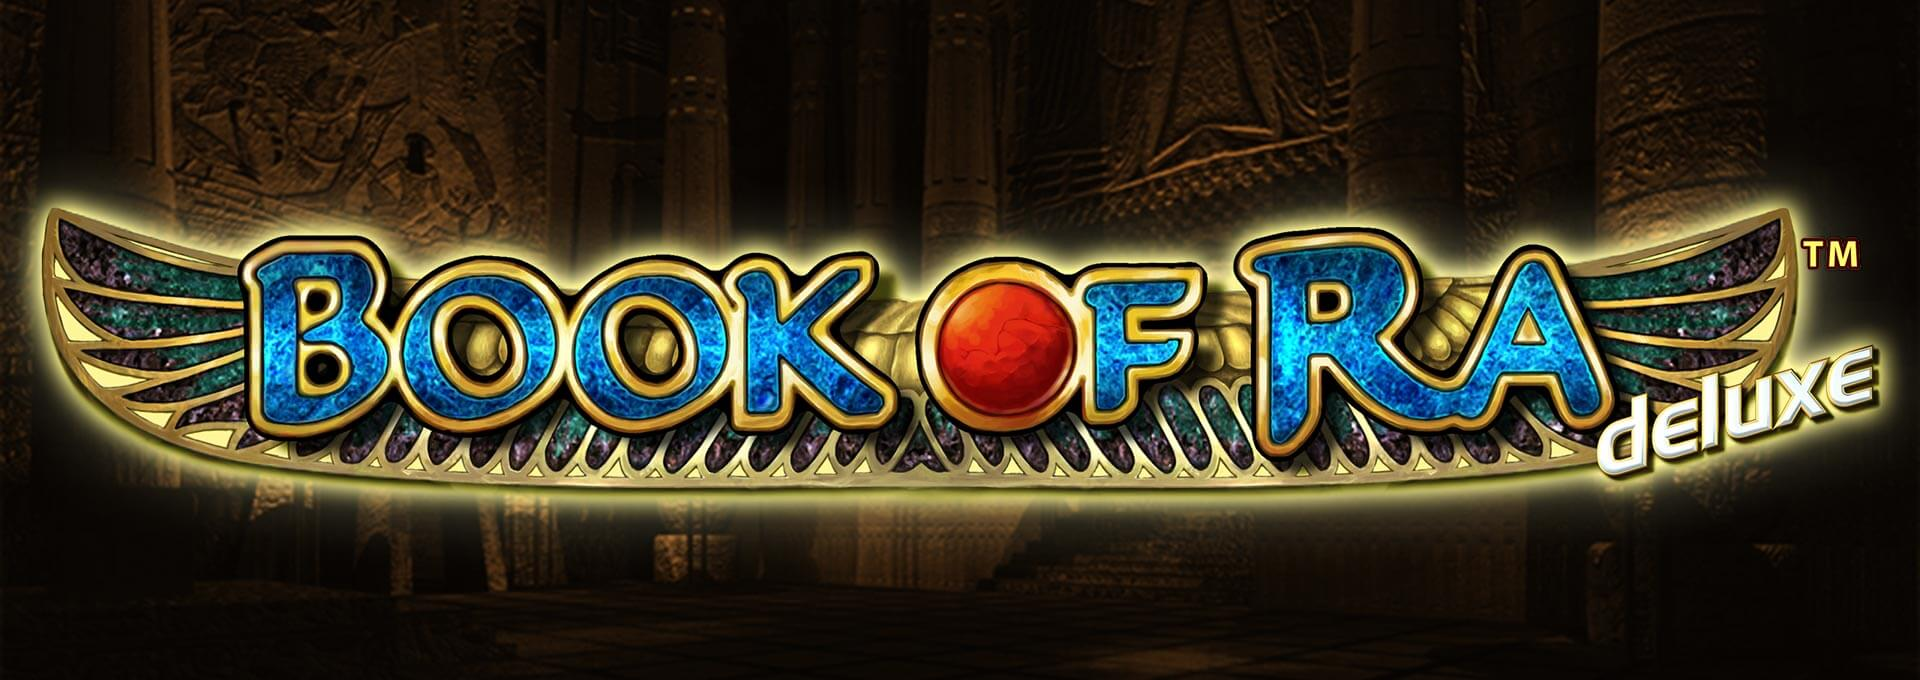 online casino slot book of ra download free